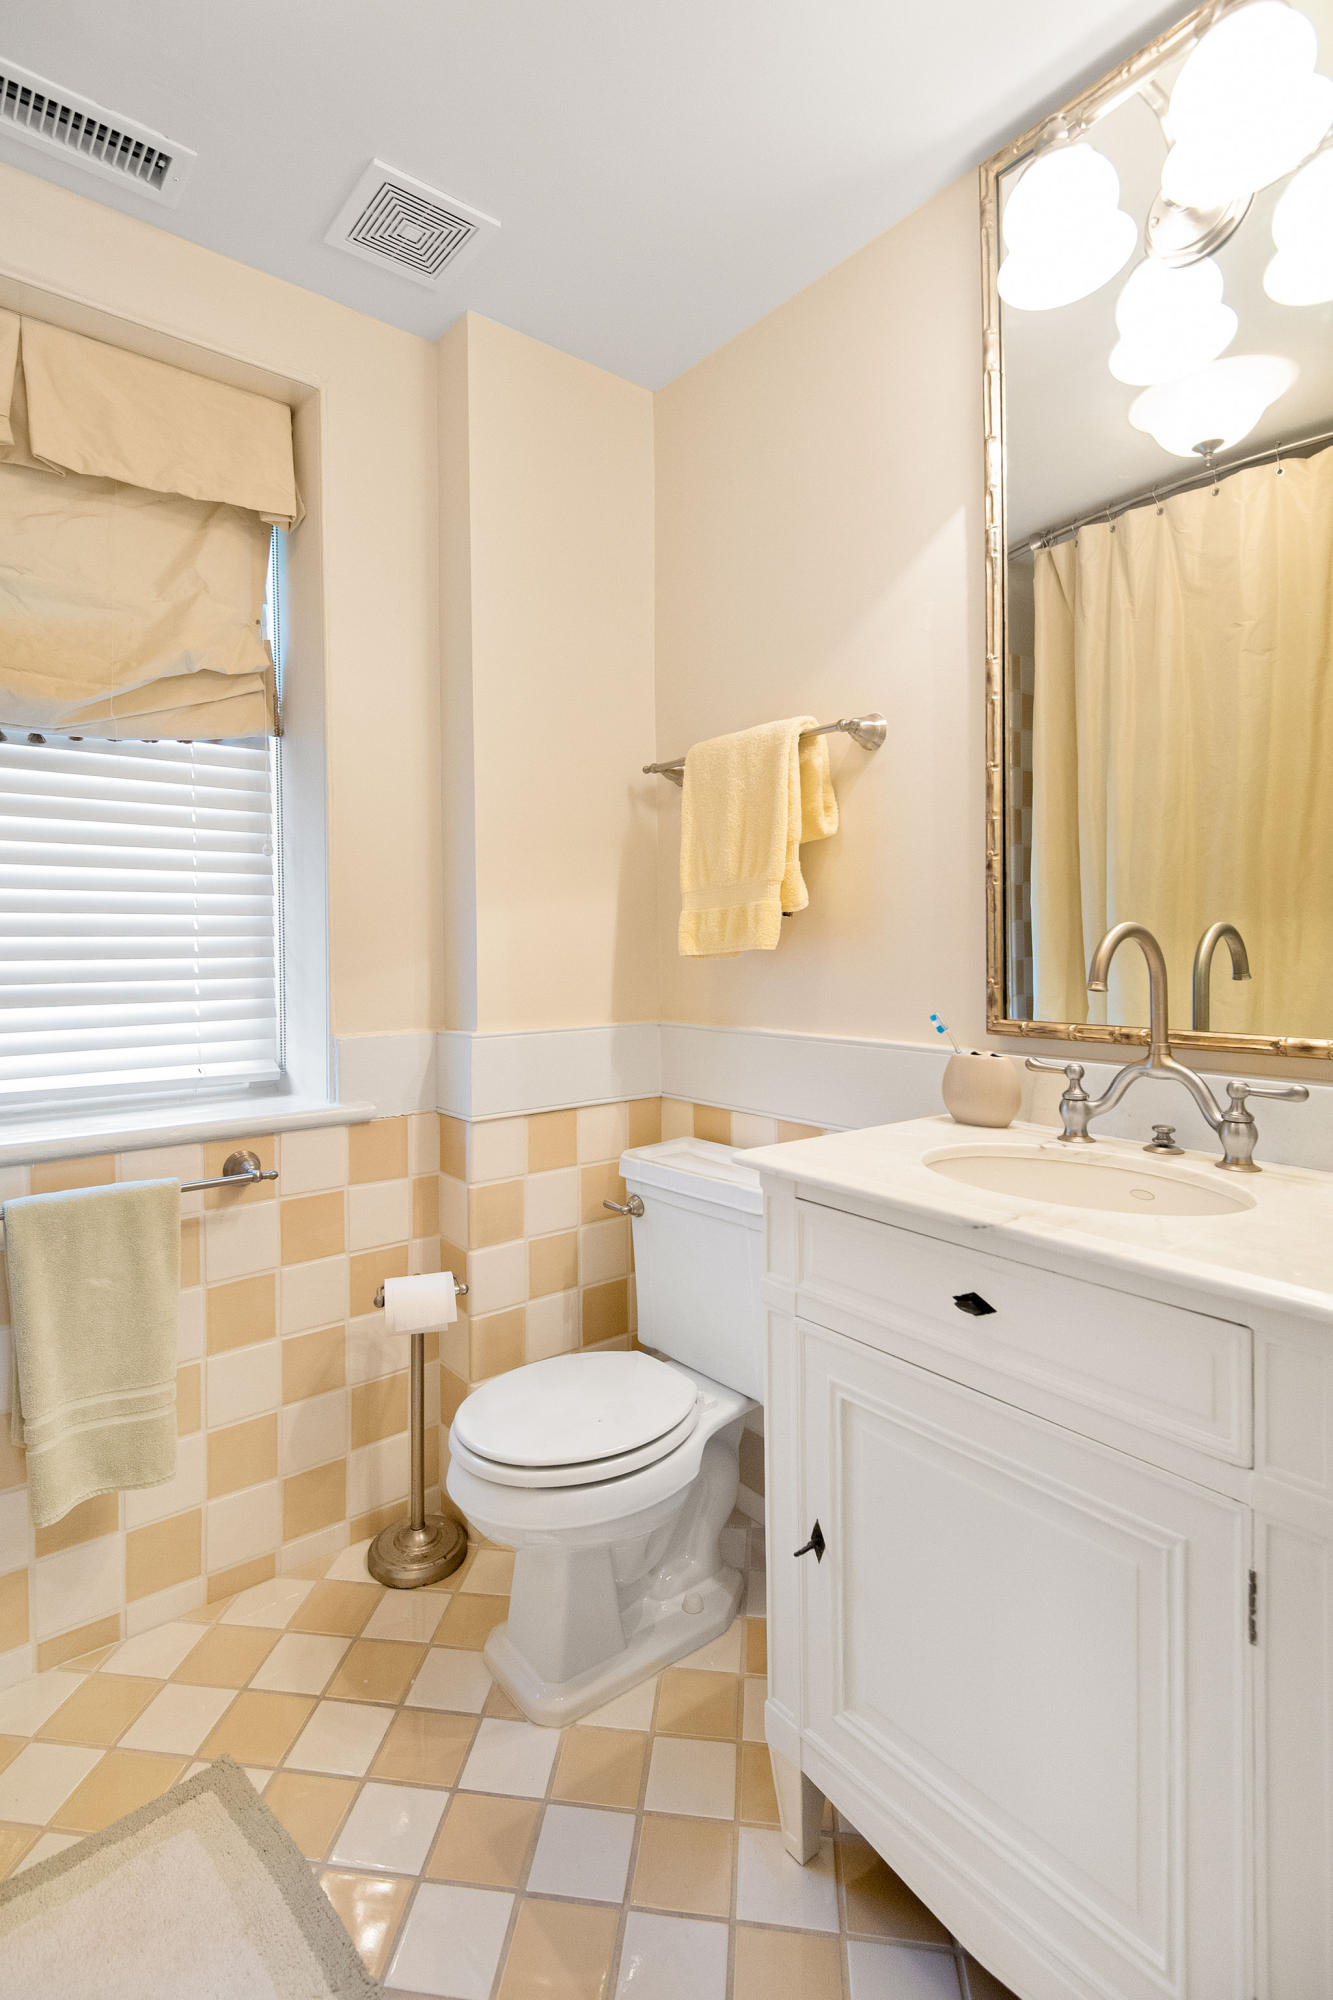 South of Broad Homes For Sale - 54 Tradd, Charleston, SC - 52